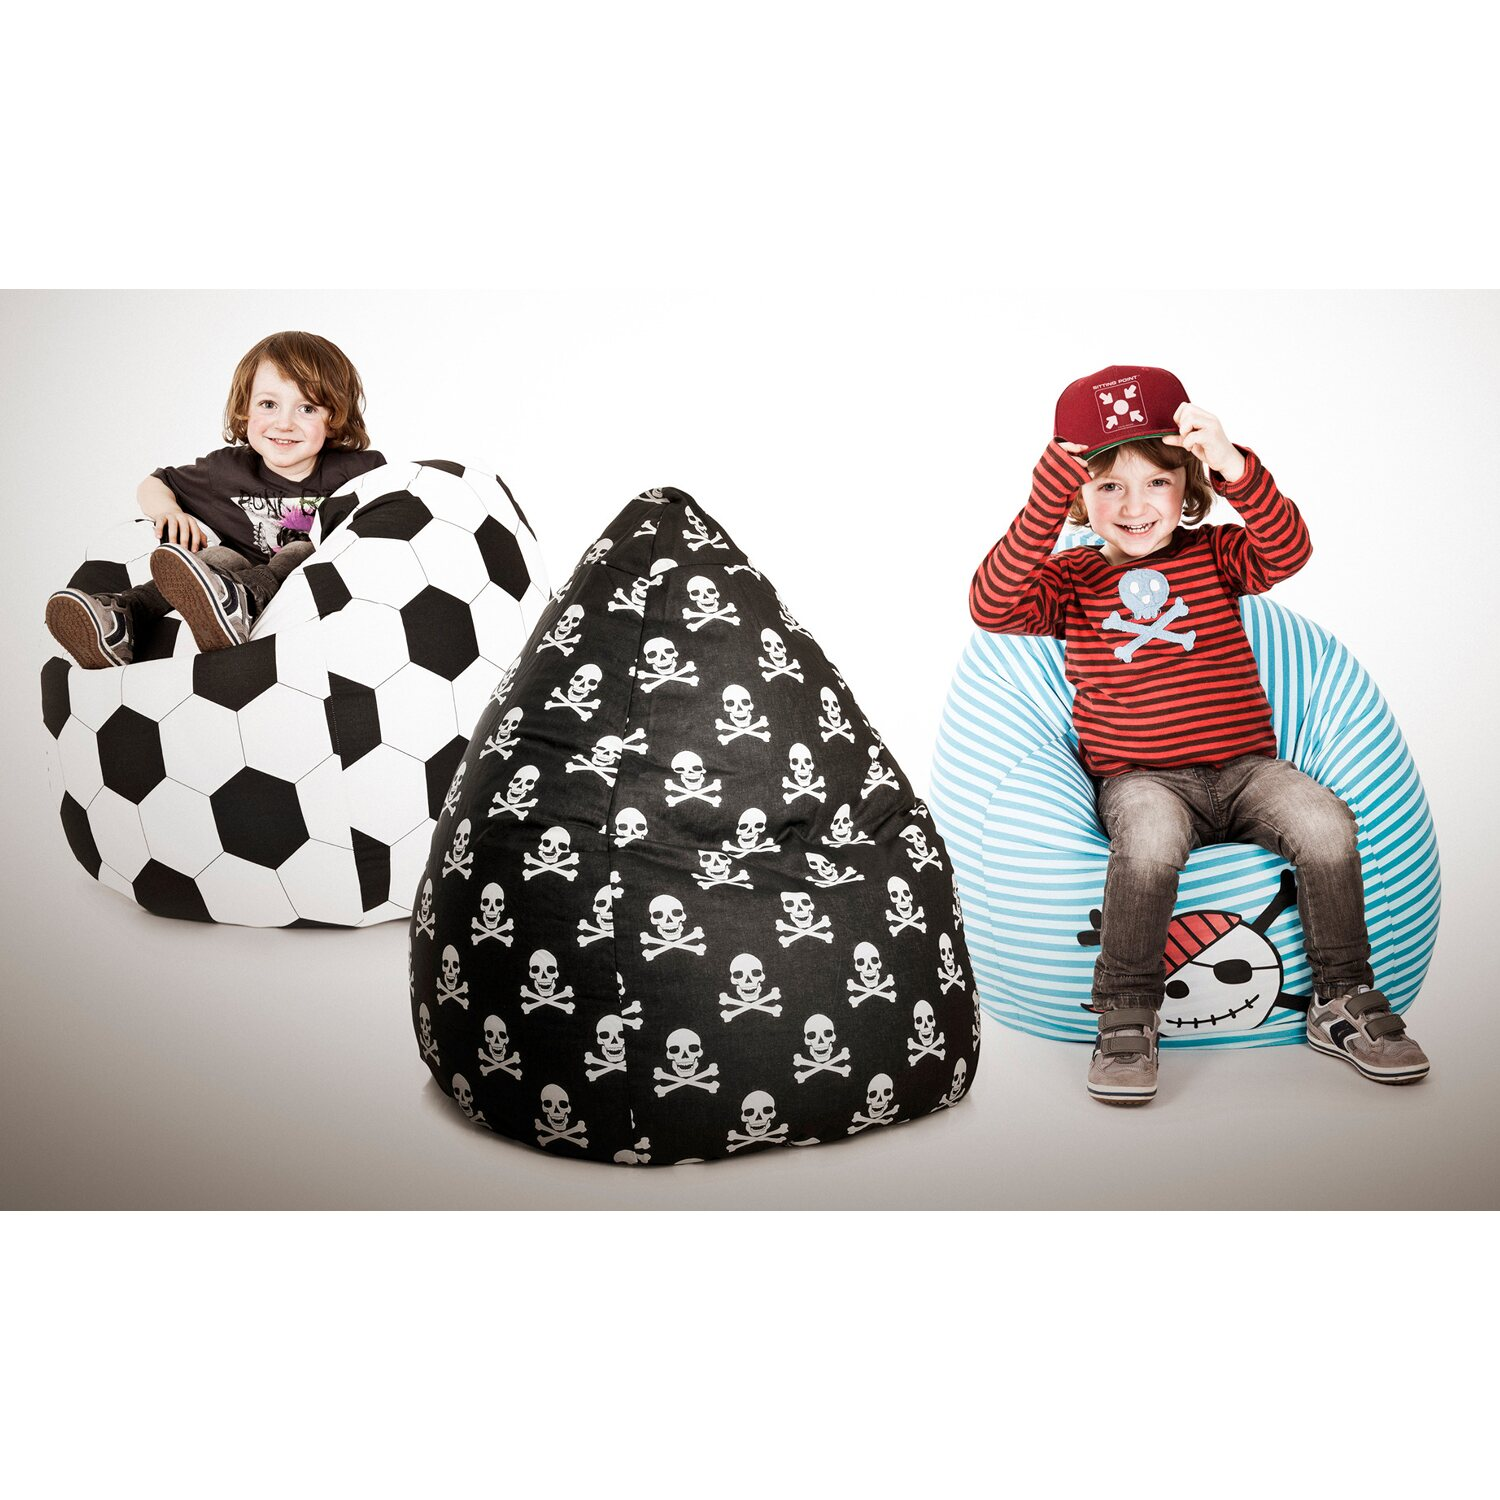 sitting point sitzsack beanbag fussball l 120 l kaufen bei obi. Black Bedroom Furniture Sets. Home Design Ideas